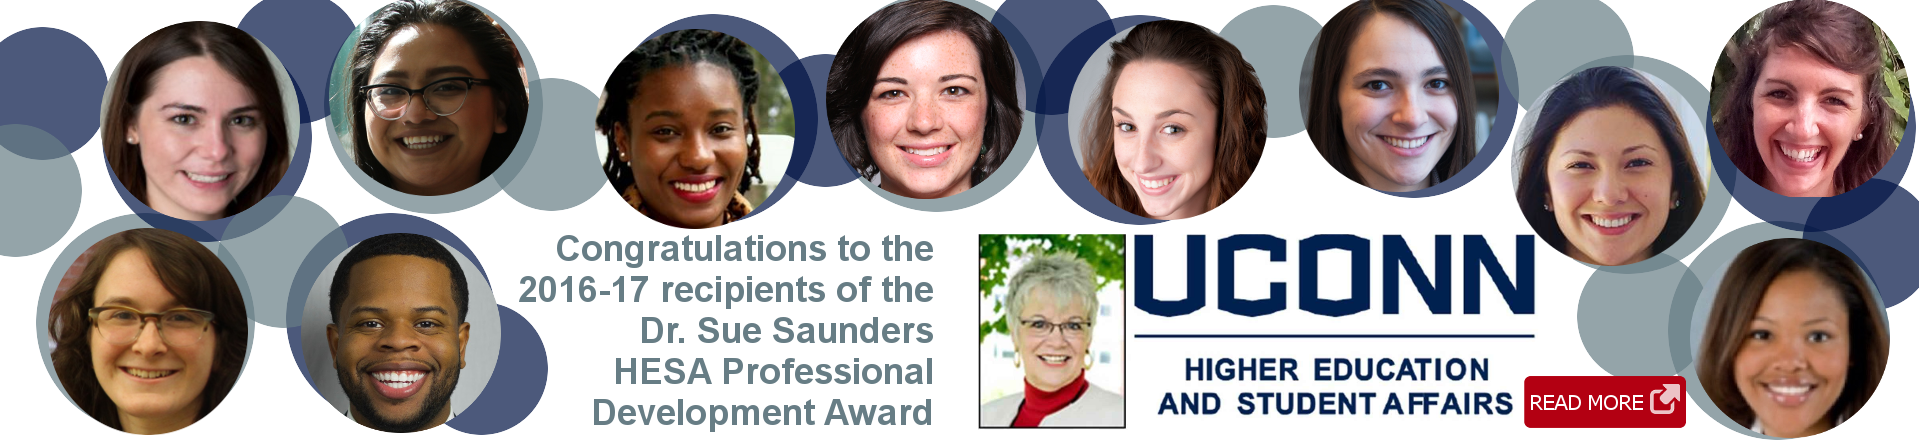 Head shots of award winners surrounding Sue Saunders photo and text